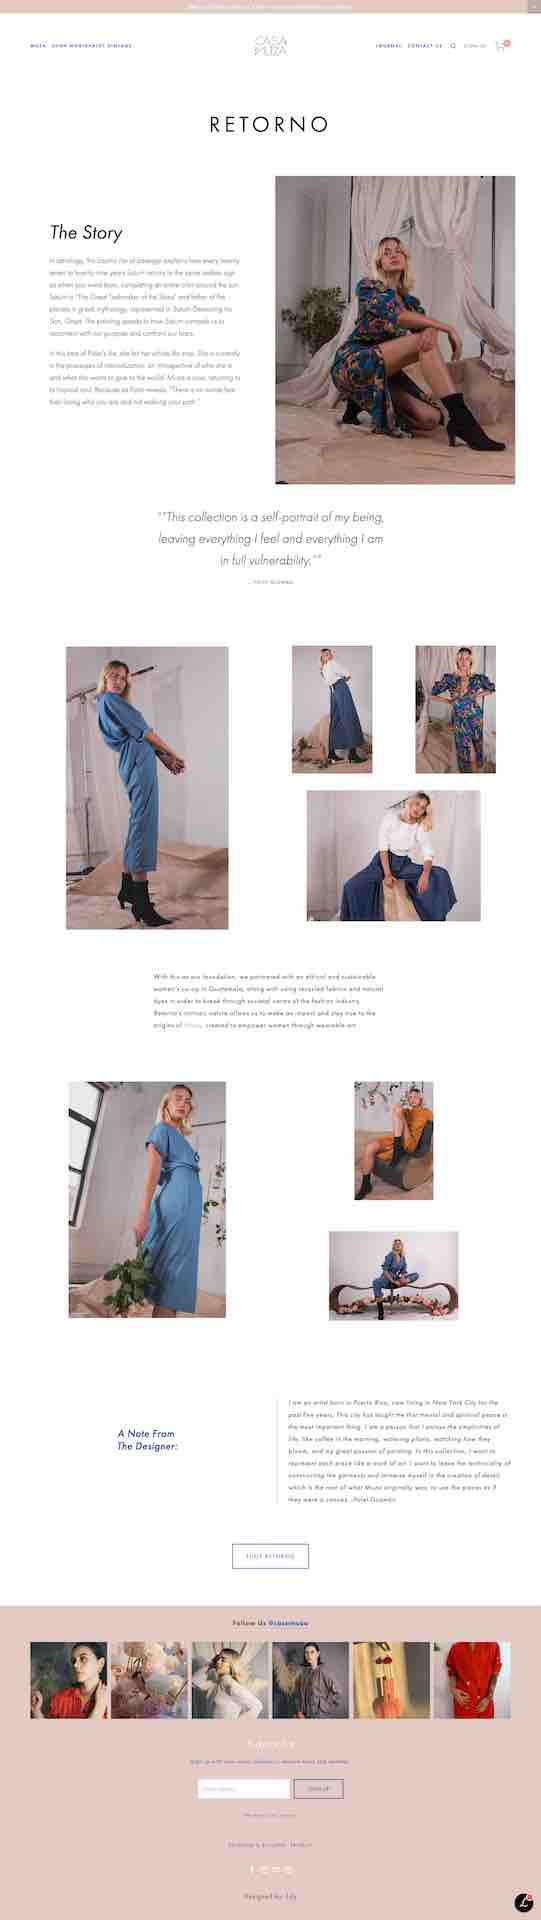 Muza Lookbooks — Casa Muza.jpeg